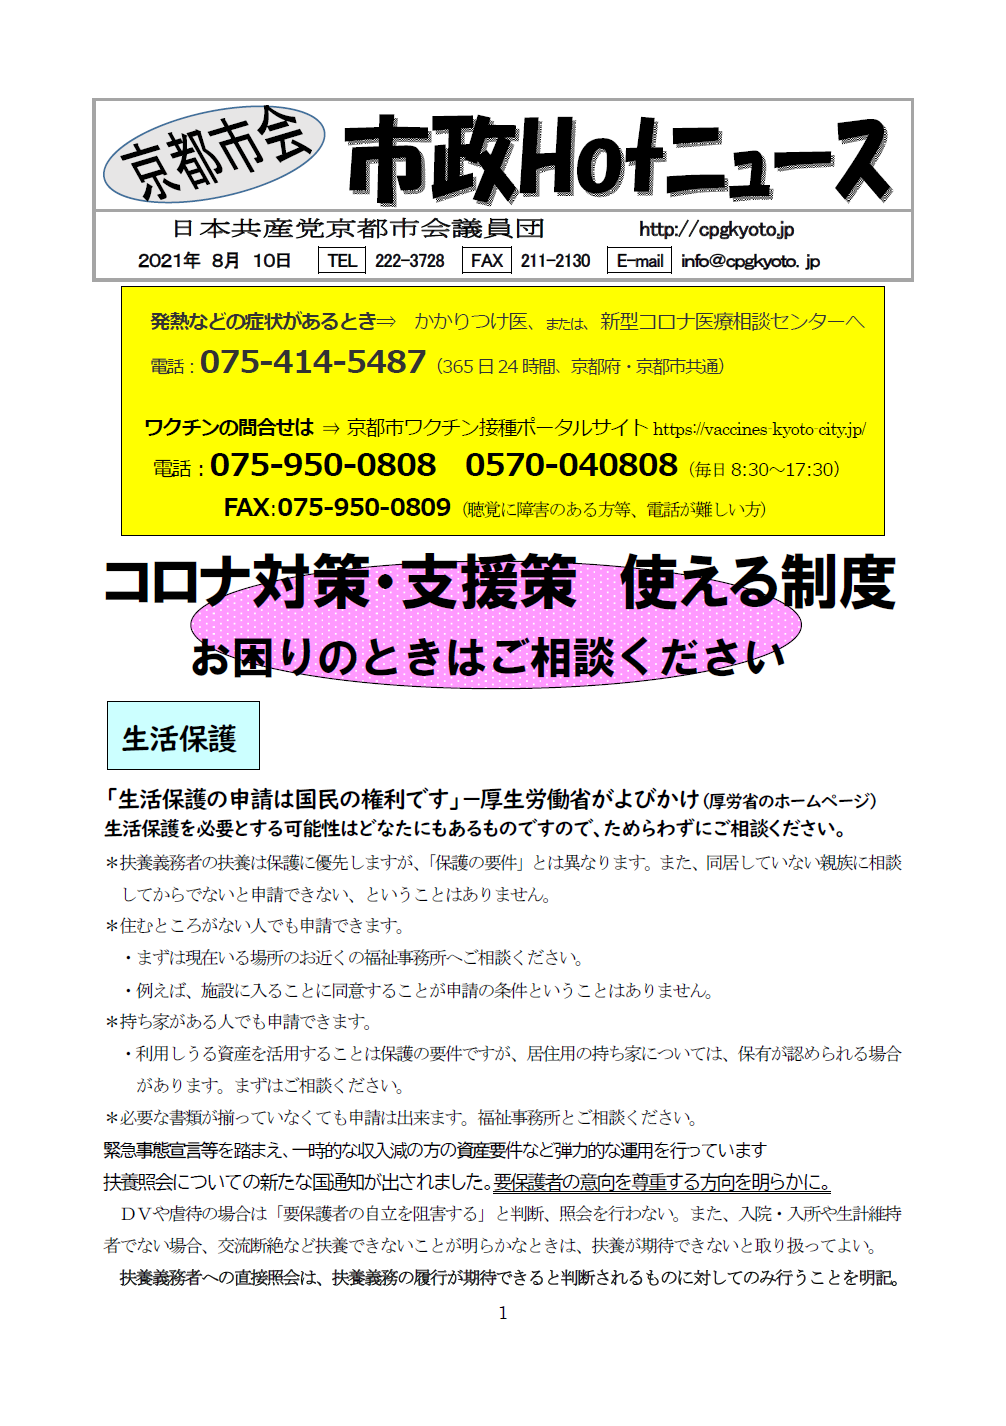 http://www.cpgkyoto.jp/topic/20210810%E4%BD%BF%E3%81%88%E3%82%8B%E5%88%B6%E5%BA%A6.png